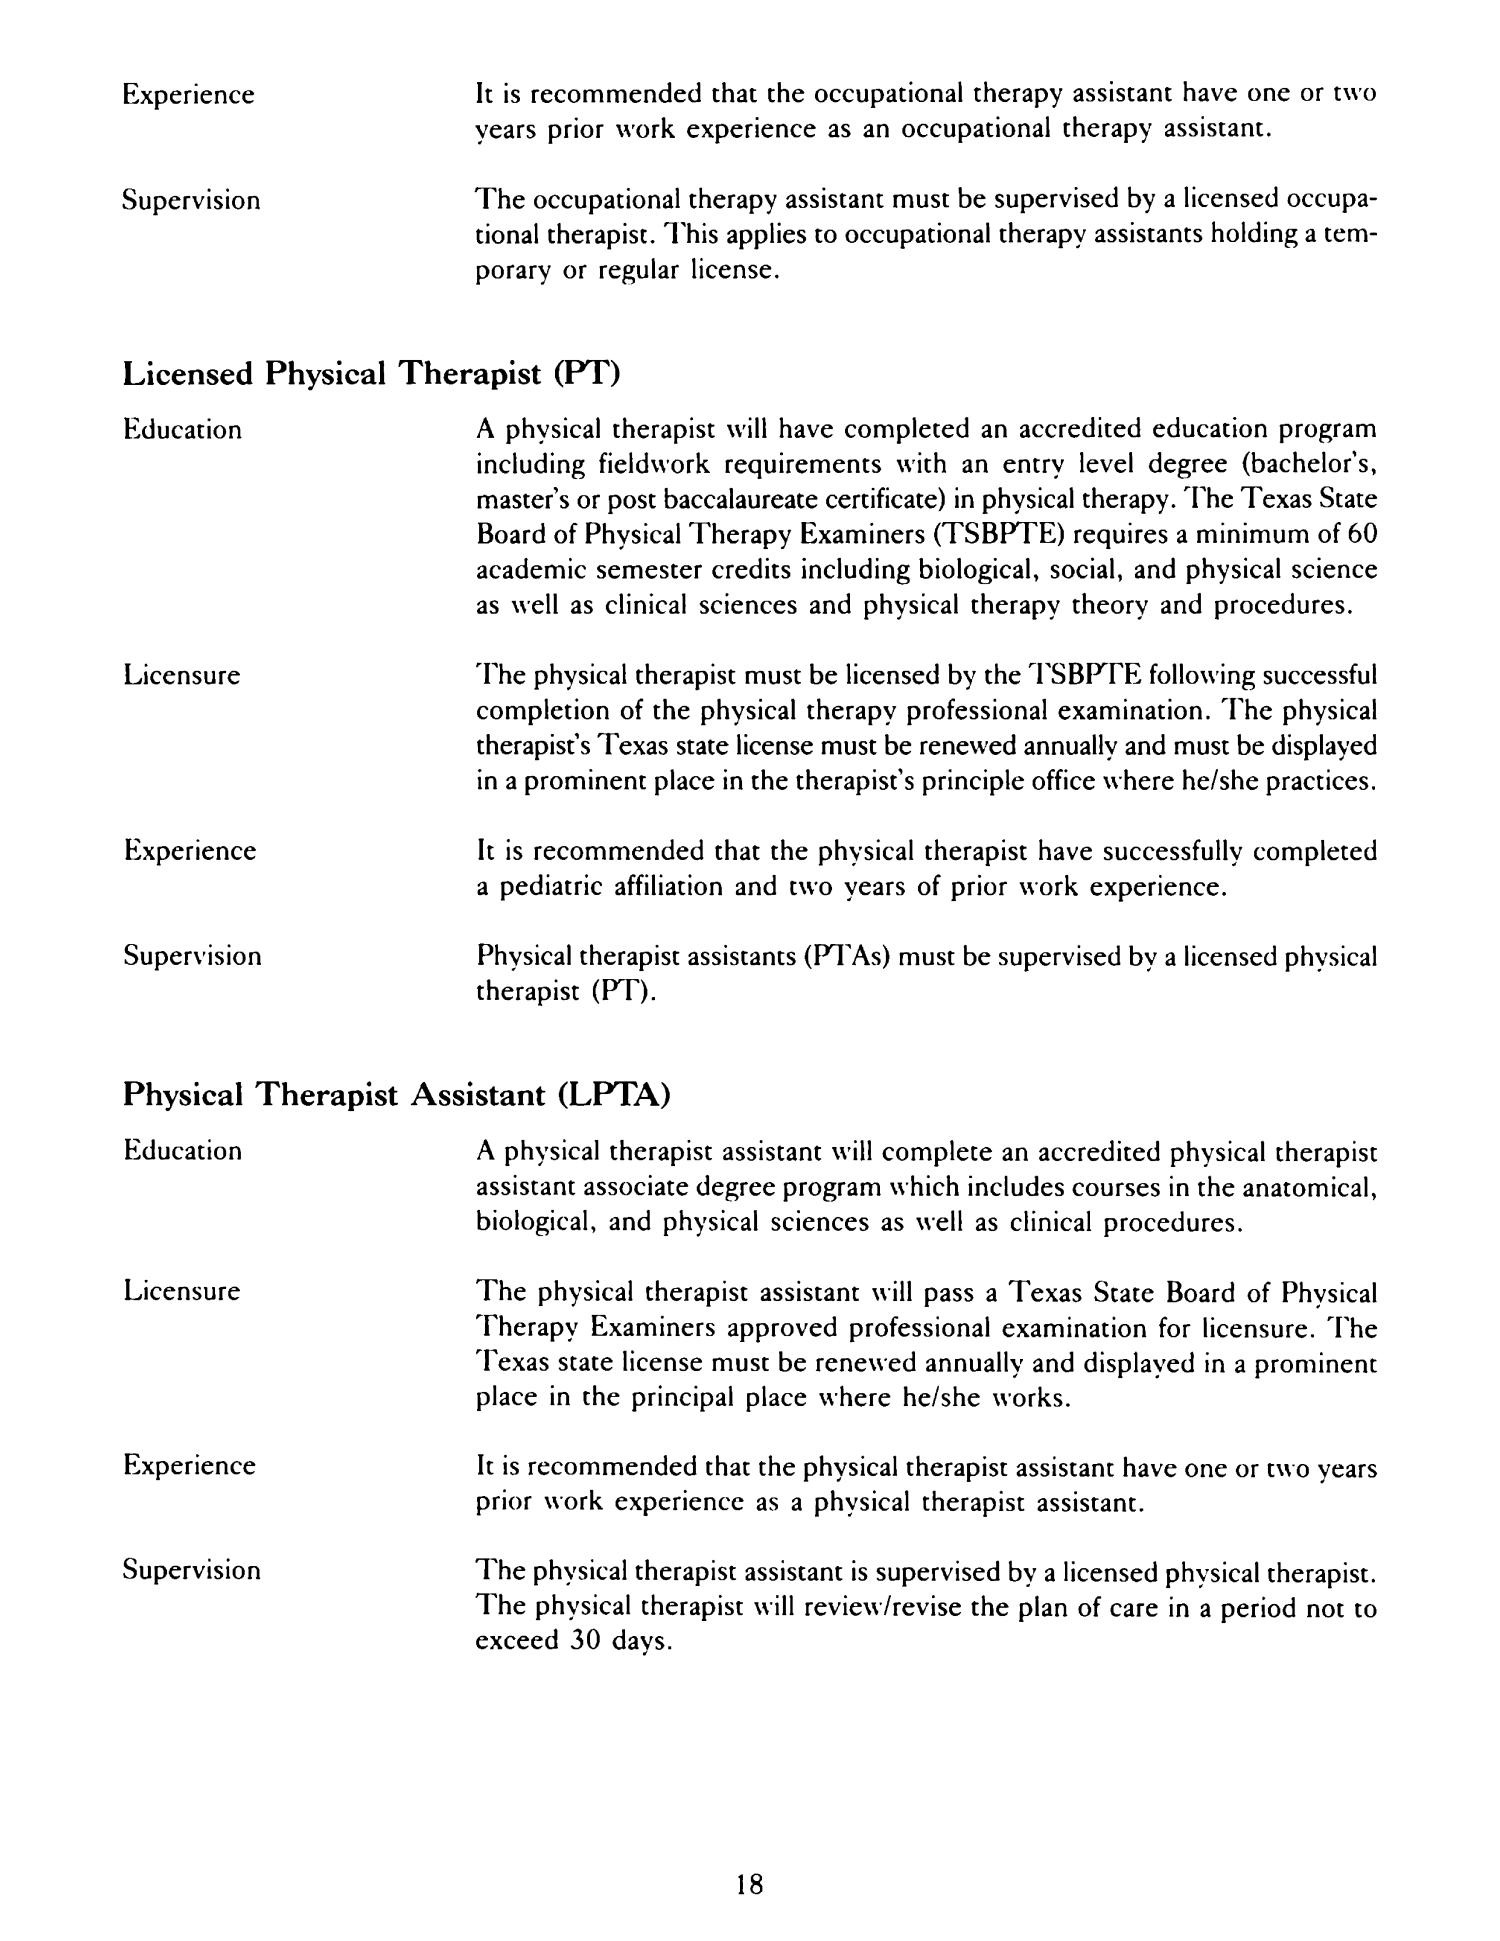 Associate degree in physical therapy - Occupational Therapy And Physical Therapy Guidelines For The Public Shools Page 18 The Portal To Texas History